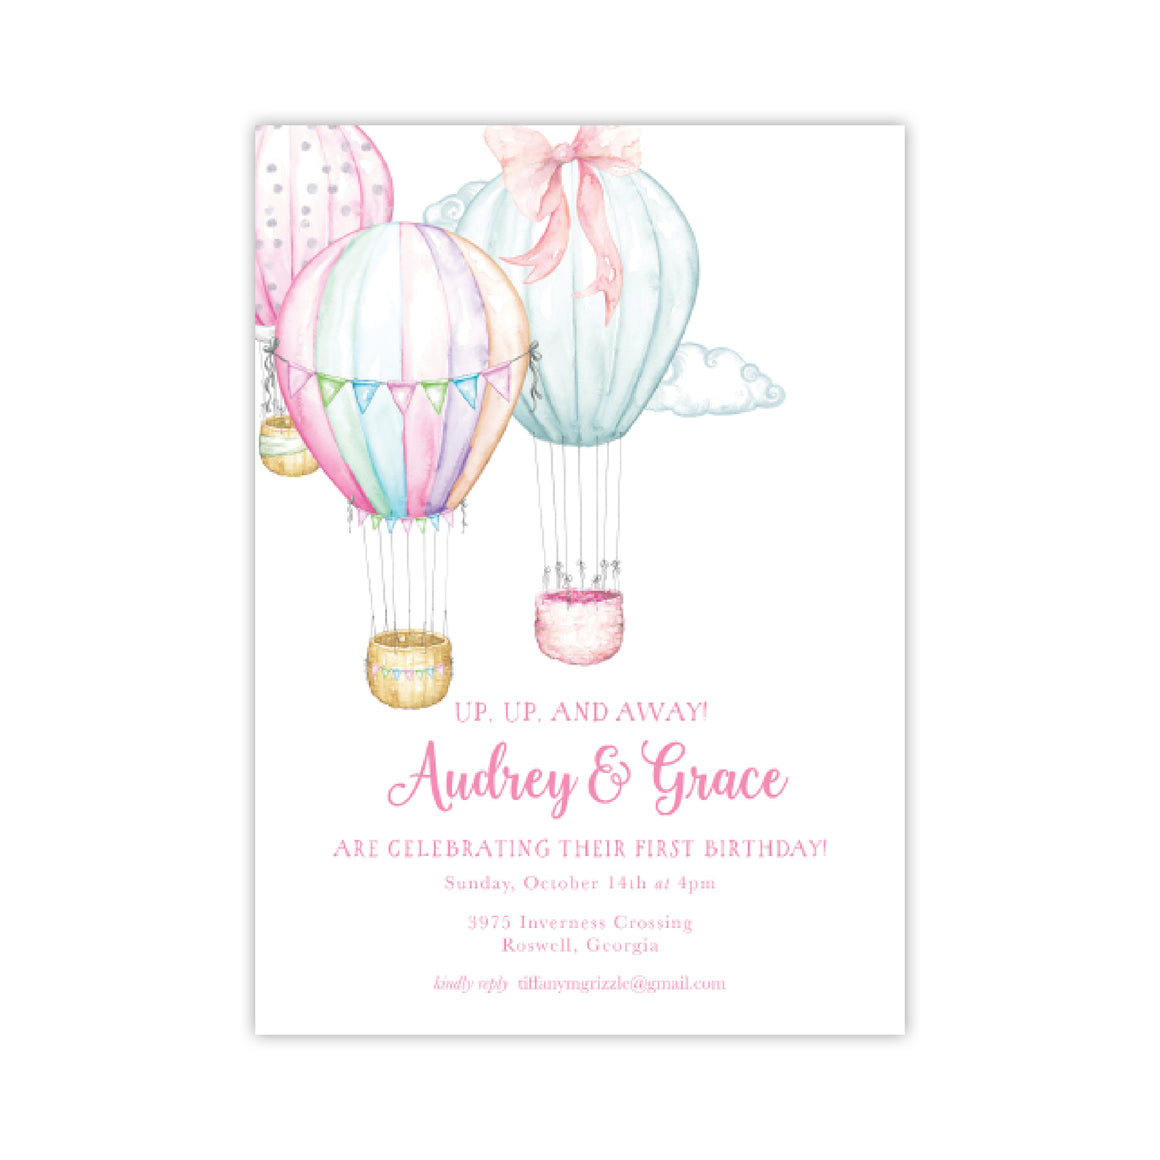 Watercolor Hot Air Balloons Birthday Party Invitation